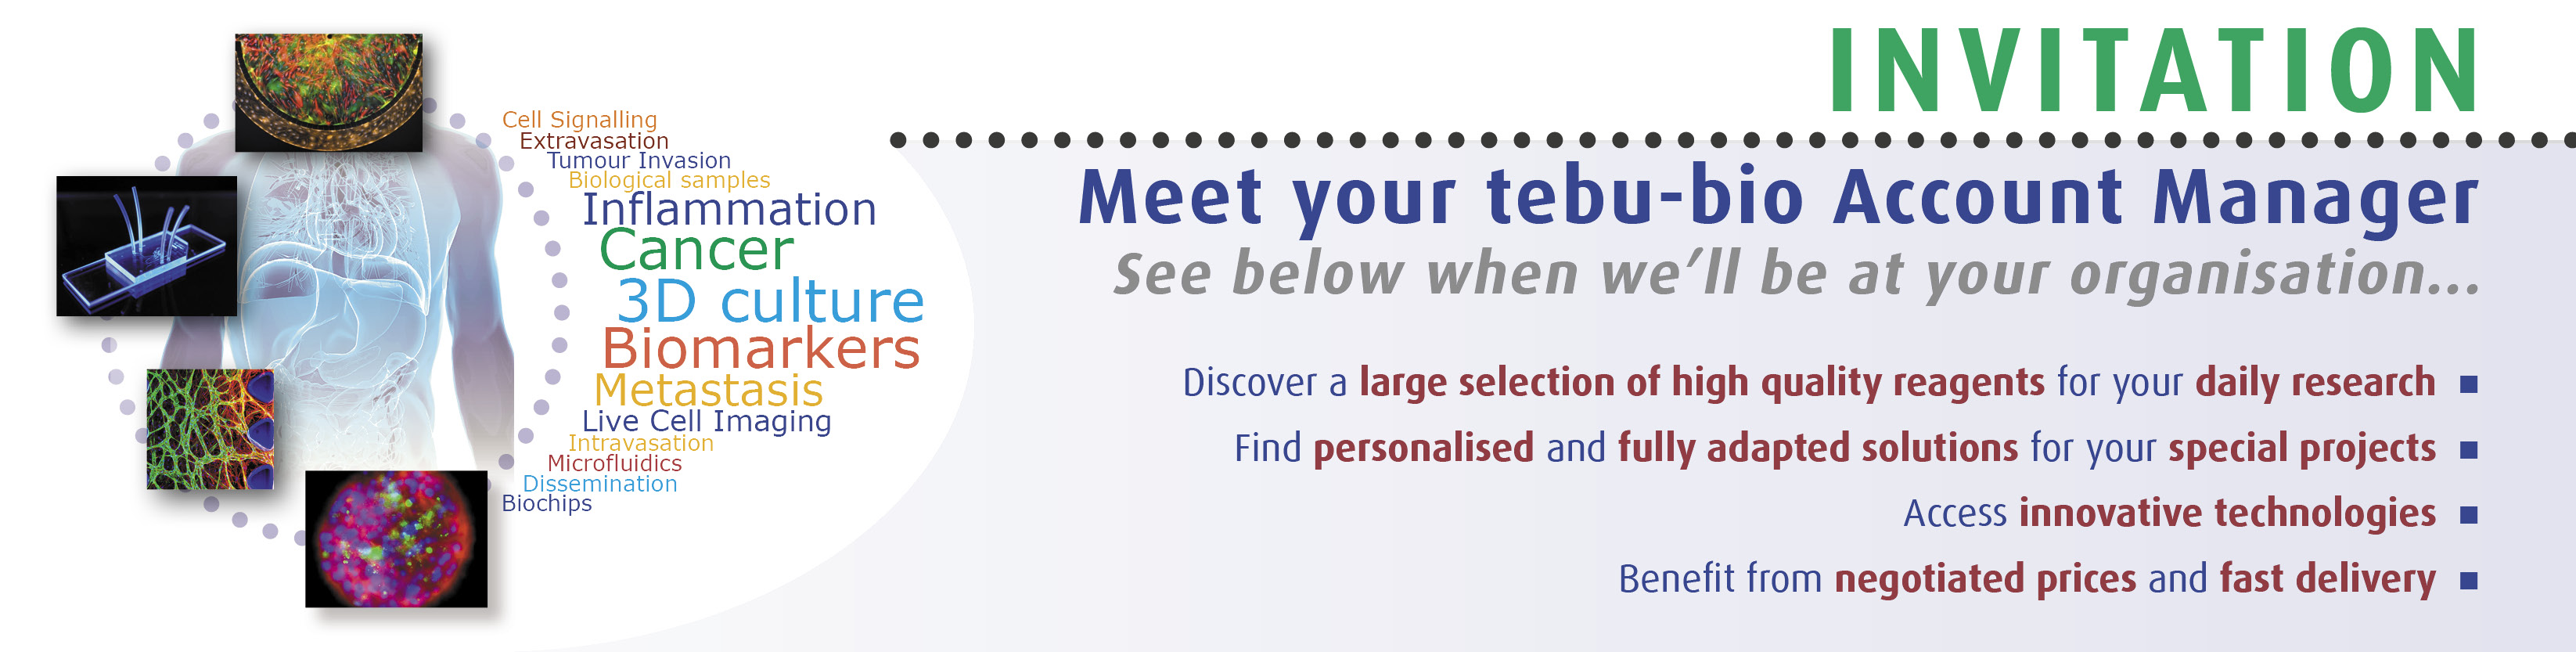 tebu-bio will be at Meet your tebu-bio Account Manager - CRCT Toulouse